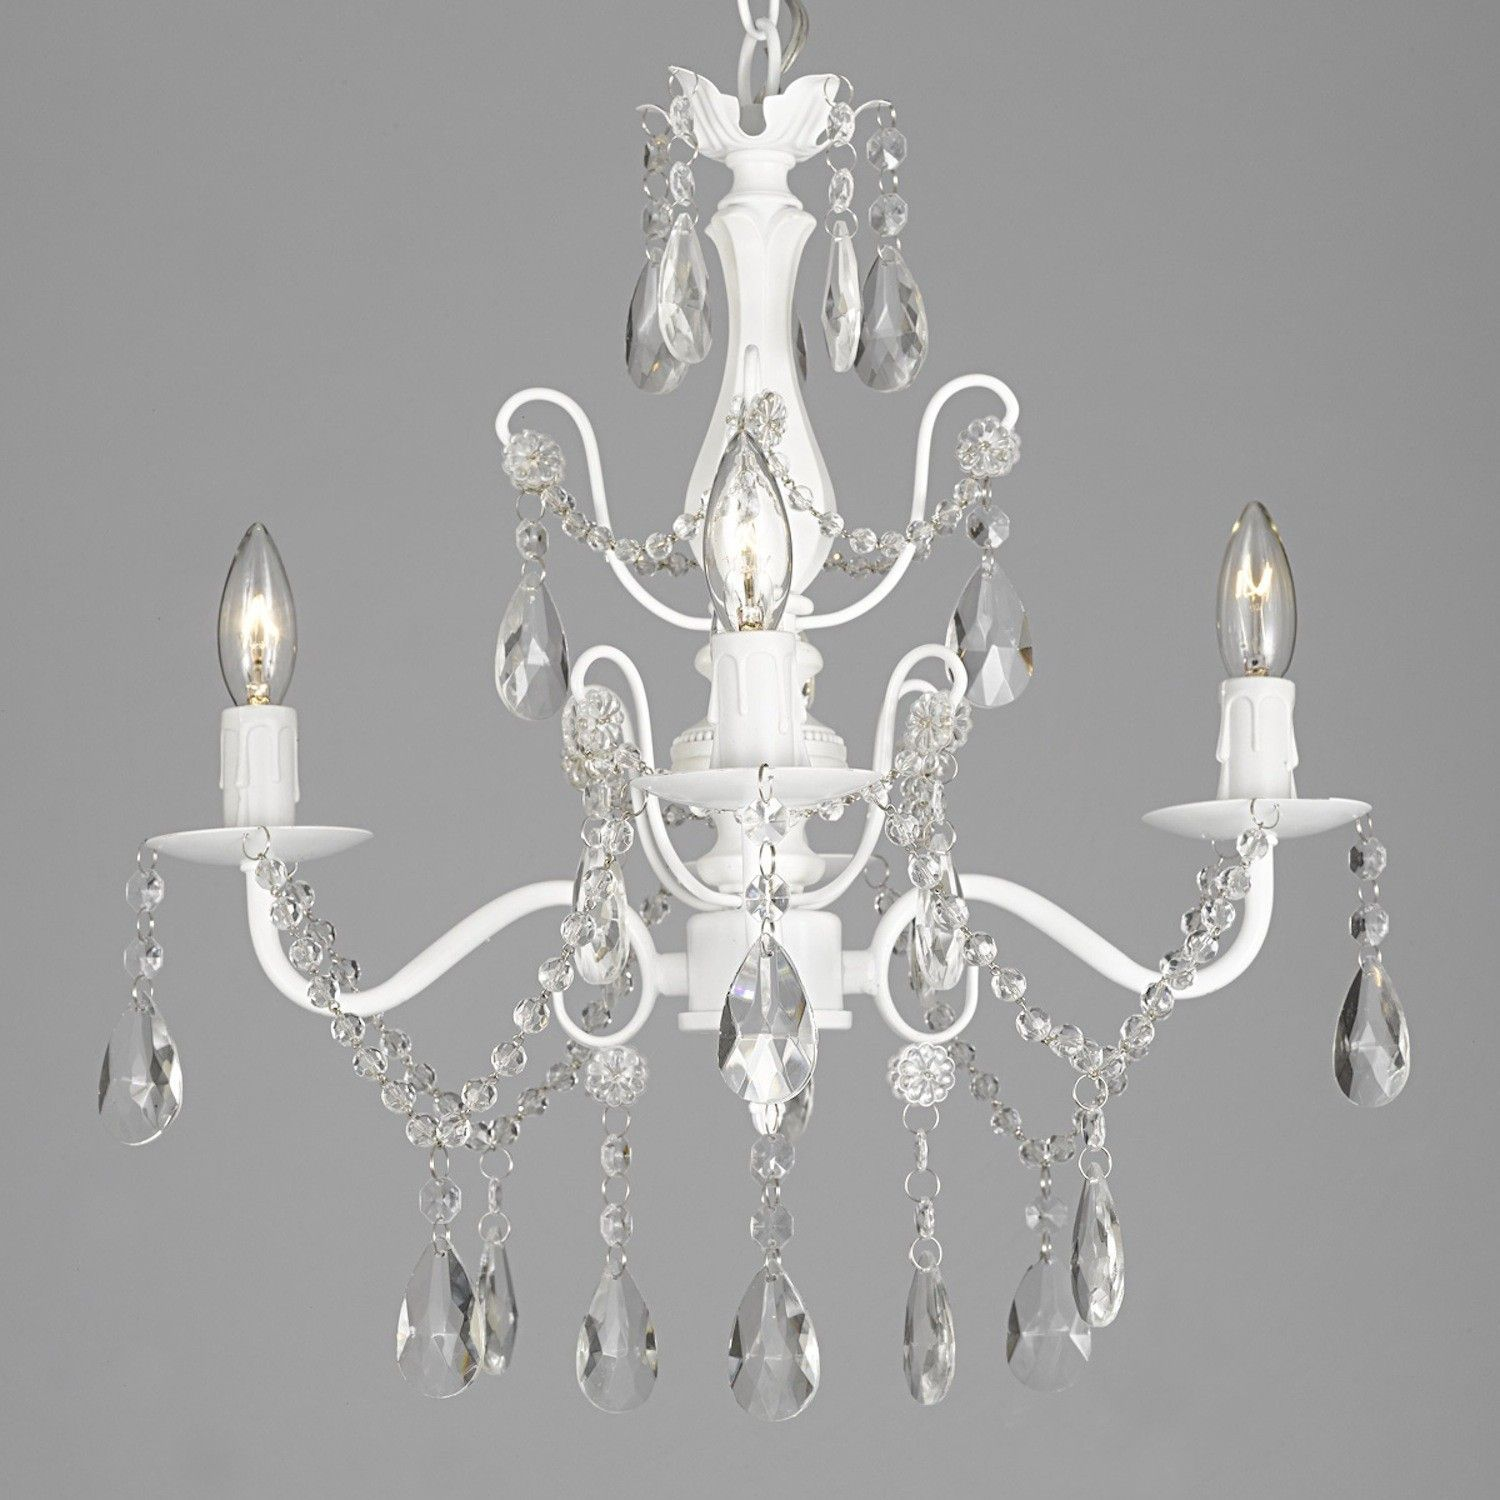 Wrought Iron And Crystal 4 Light White Chandelier H 14 X W 15 Pendant Fixture Lighting Ceiling Lamp Hardwire Plug In By Dean